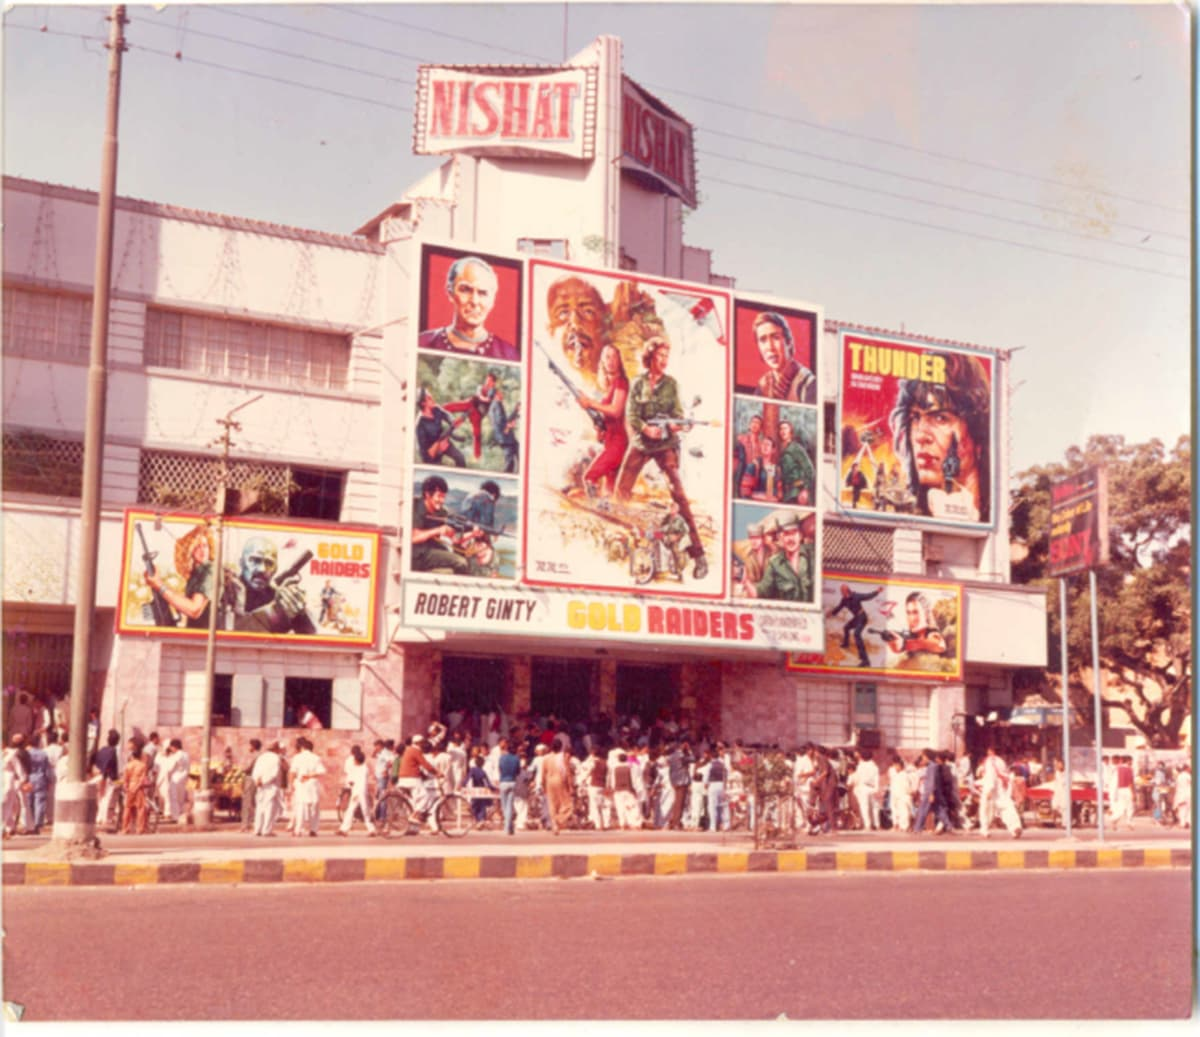 Hollywood classics 'Gold Raiders' and 'Thunder' up for viewing at Nishat. — Photo courtesy: The Citizens Archives of Pakistan